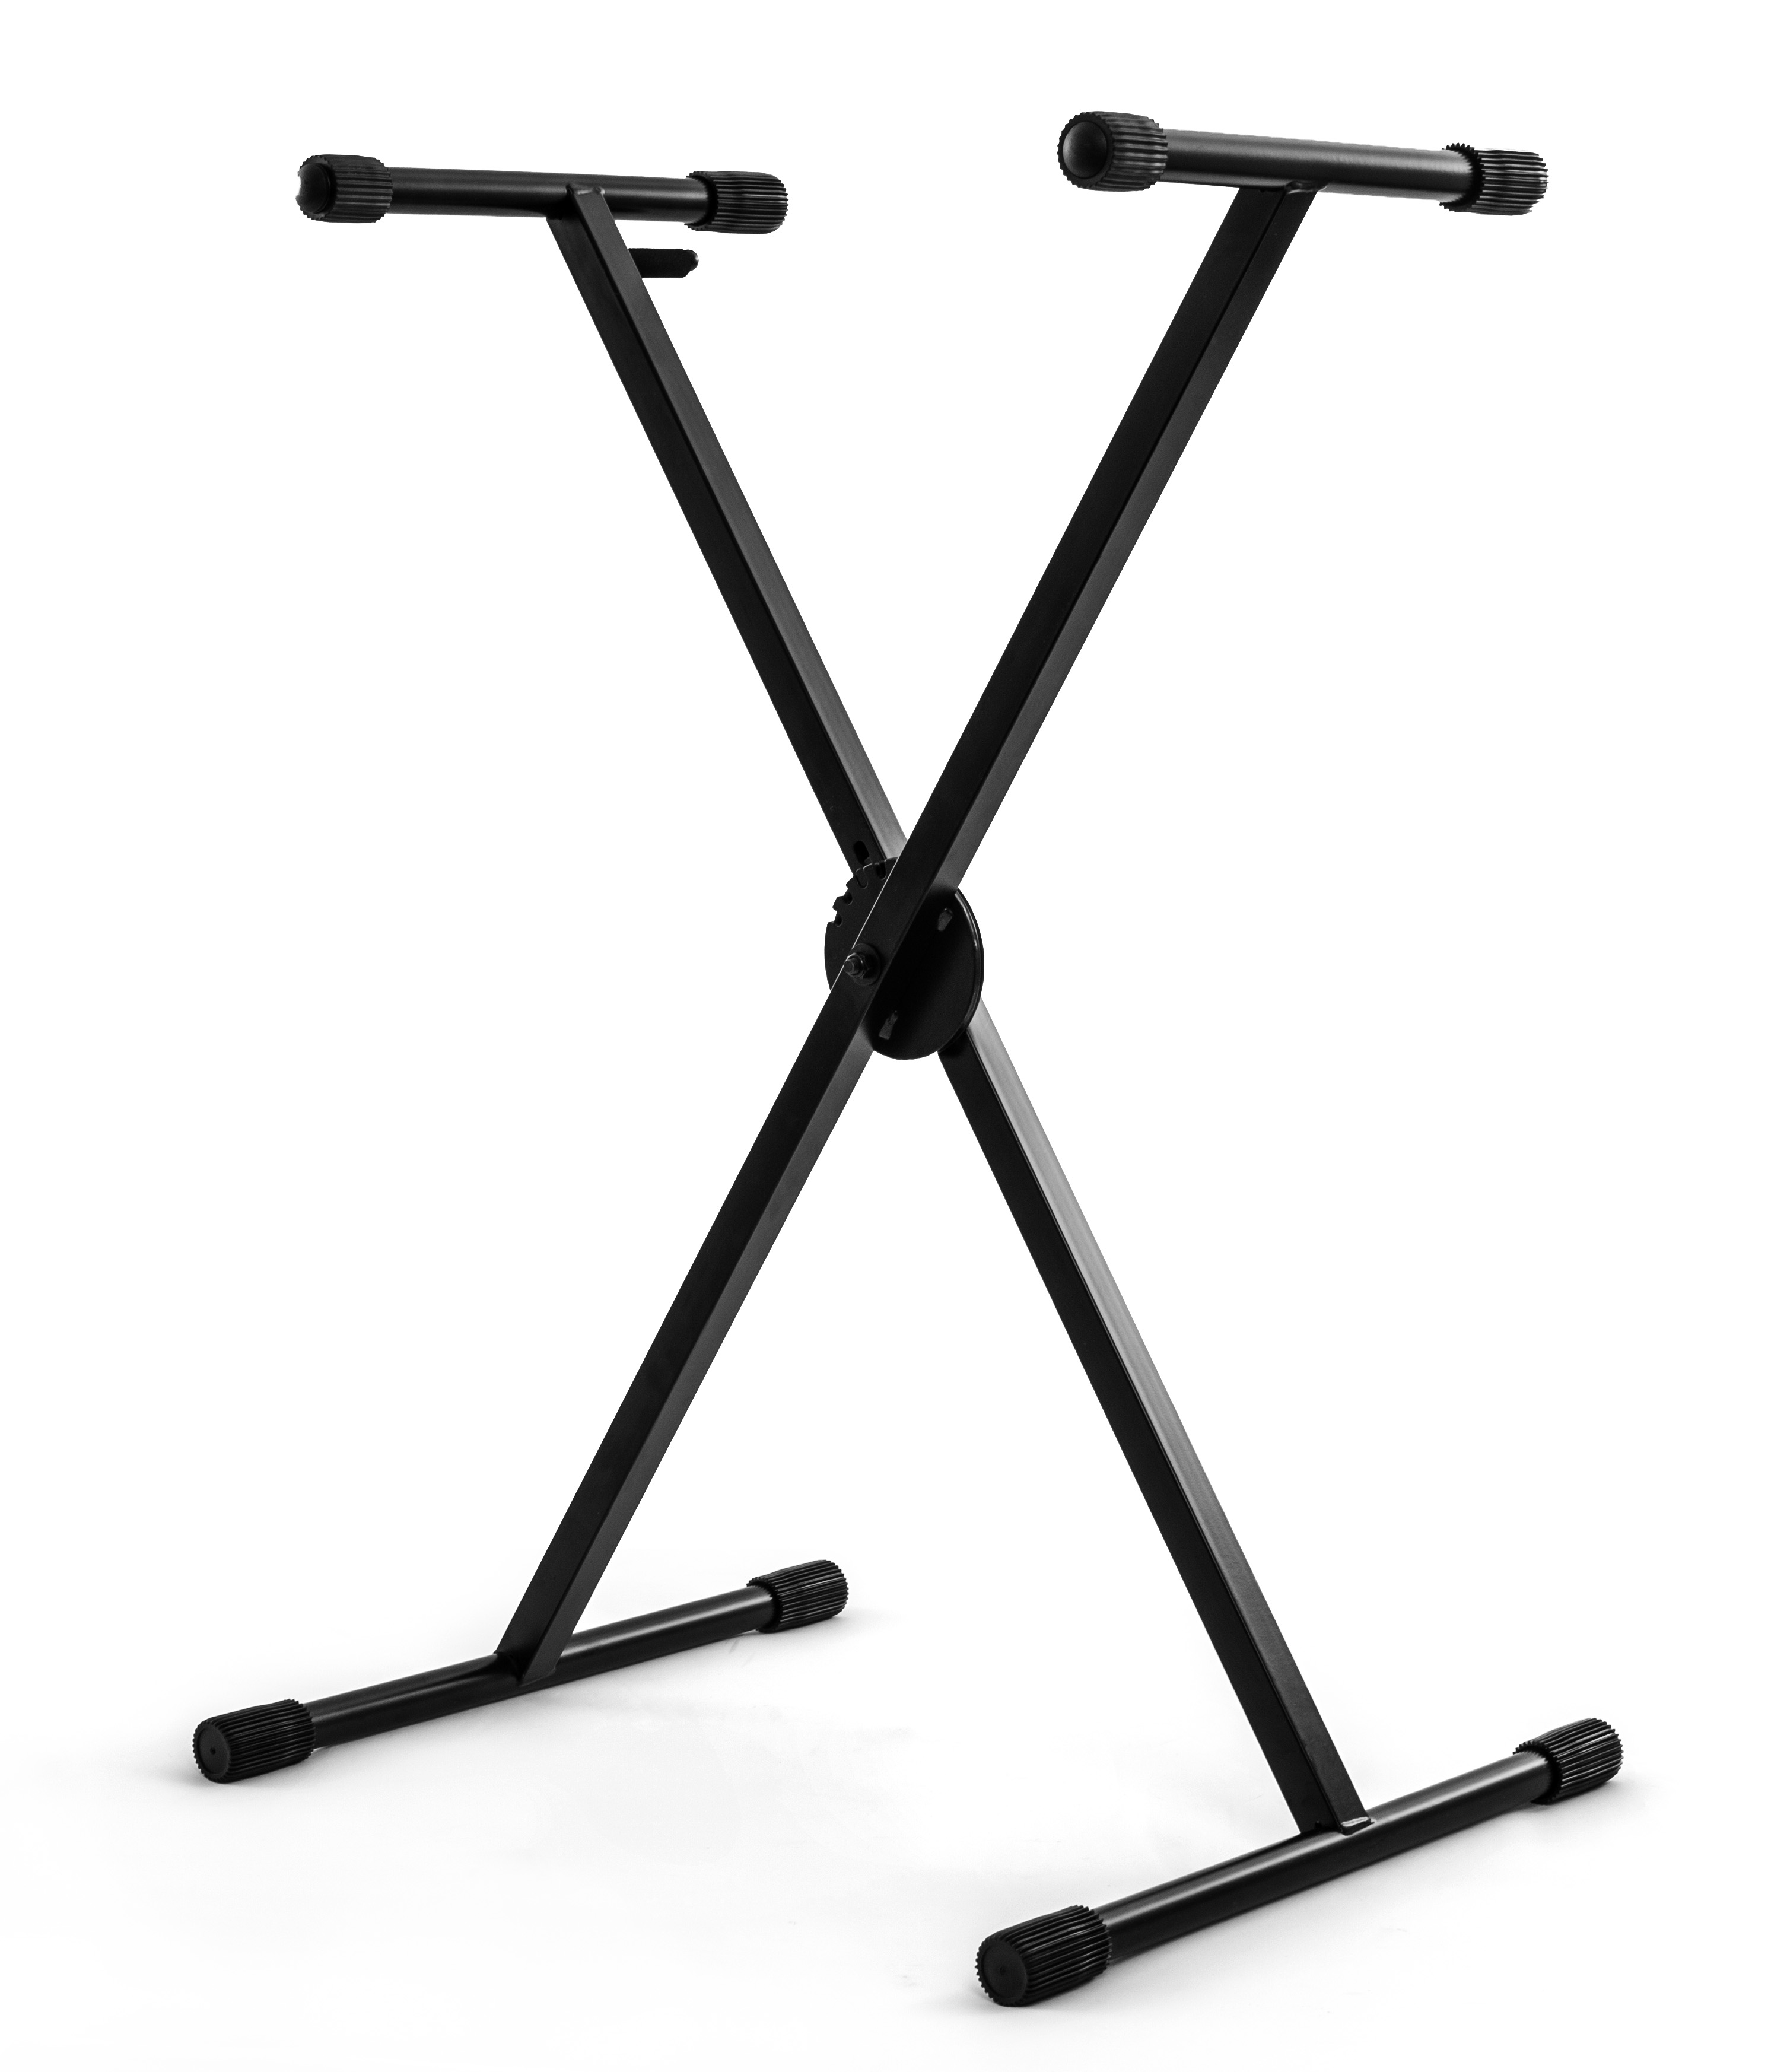 Nomad NKS-K177 Single X-Style Trigger Action Keyboard Stand